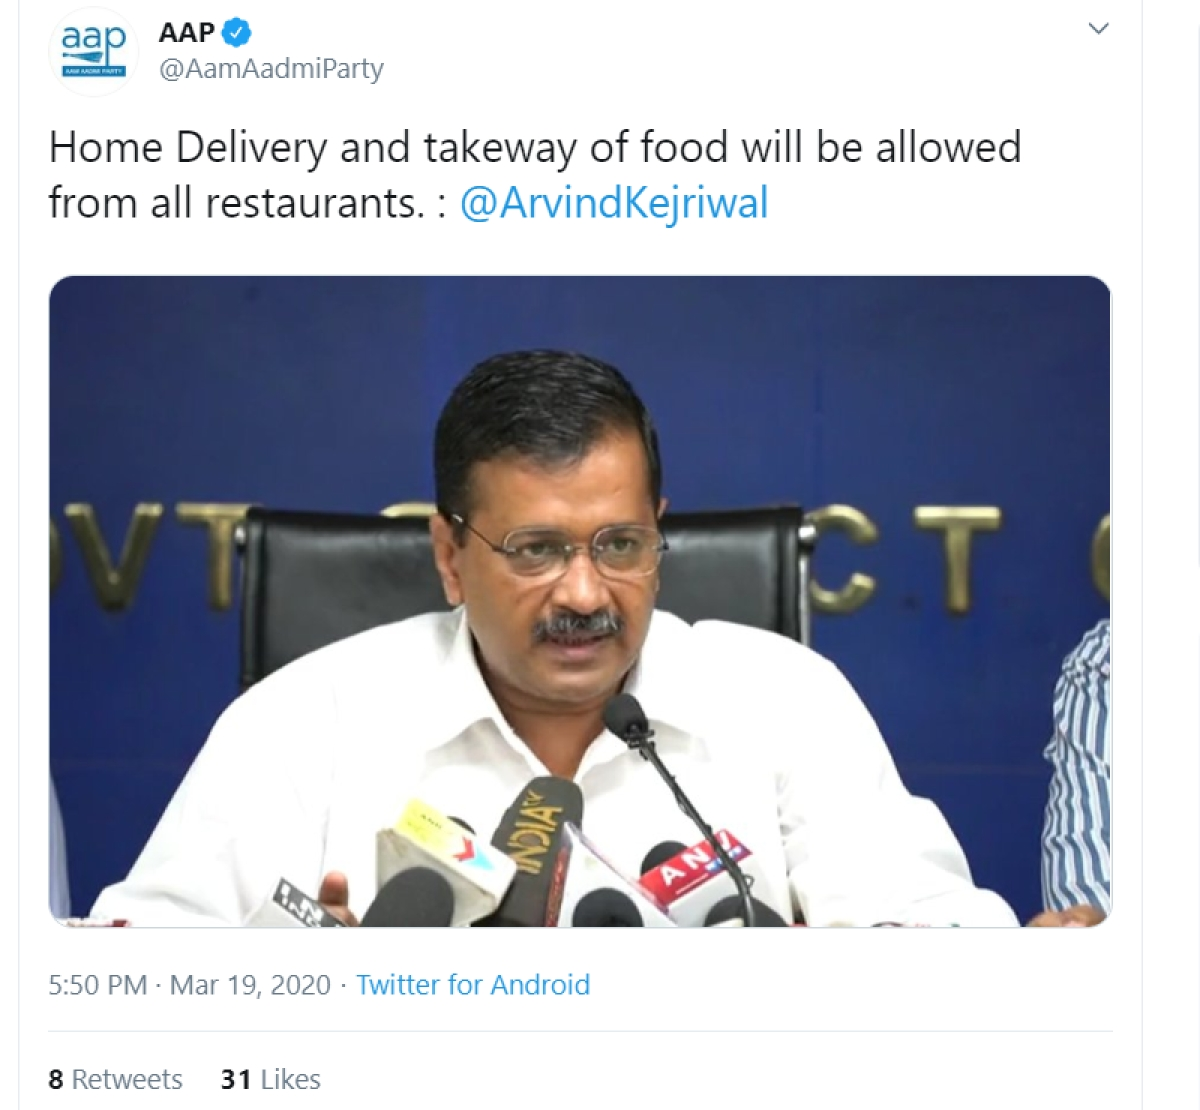 Fastest U-Turn? AAP tweets food delivery banned in Delhi, then clarifies it's not!